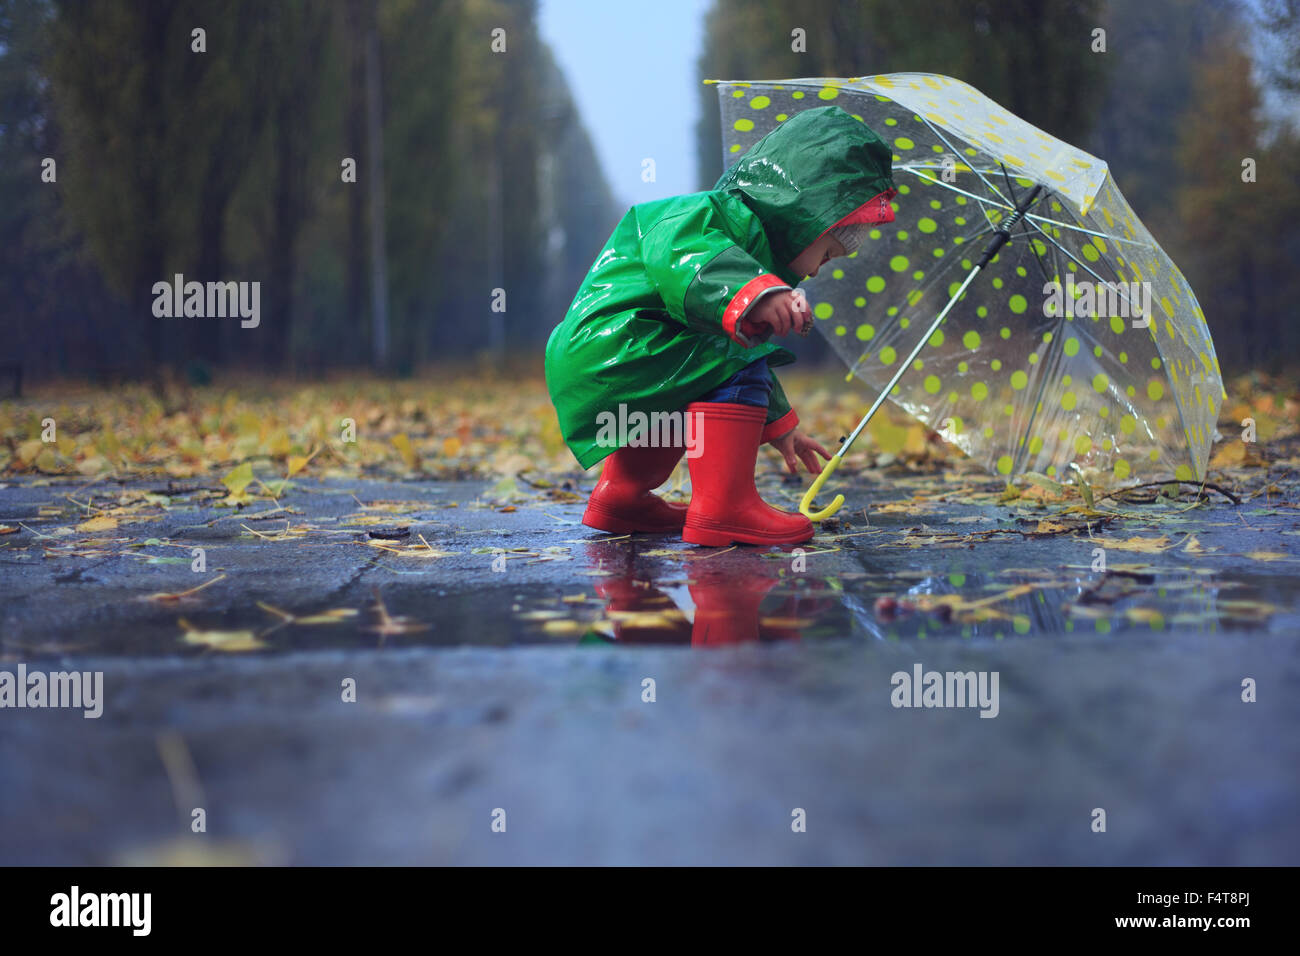 Toddler and umbrella in autumn rainy park - Stock Image